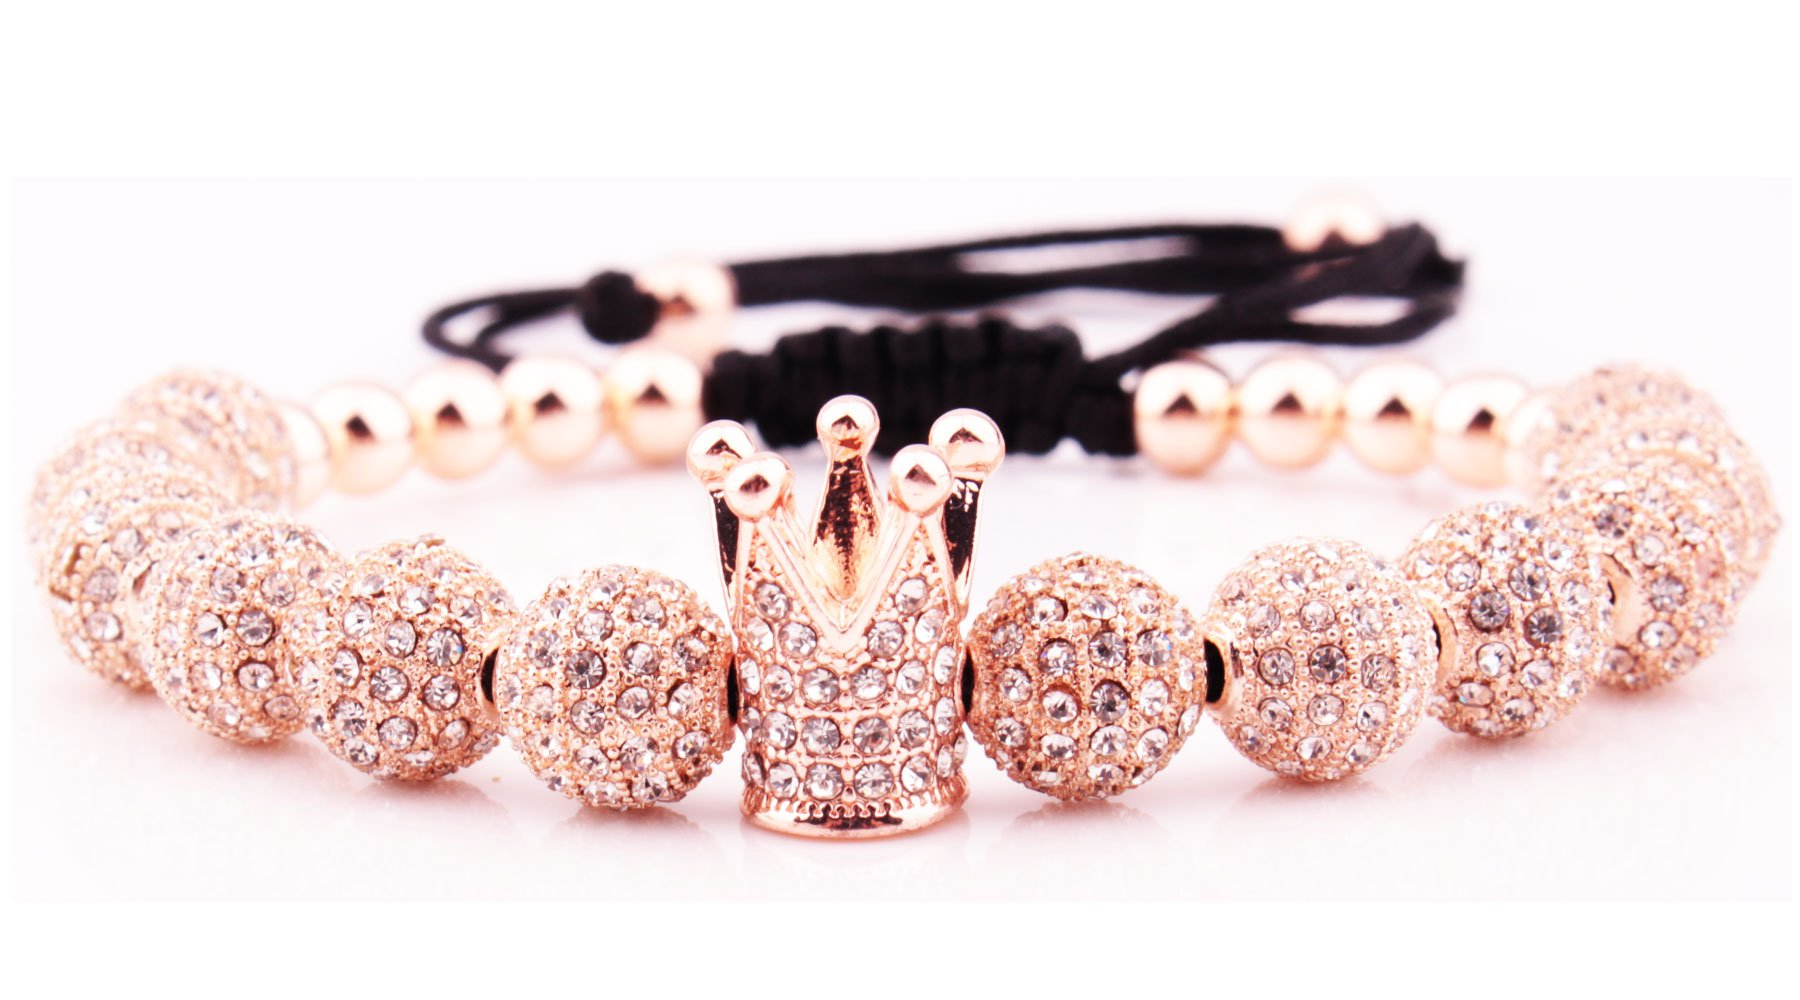 GVUSMIL Rose Gold Luxury CZ Imperial Crown Braided Copper Bracelets with 8mm Micro Pave Cubic Zirconia Beads Pulseira Bangle for Women Men